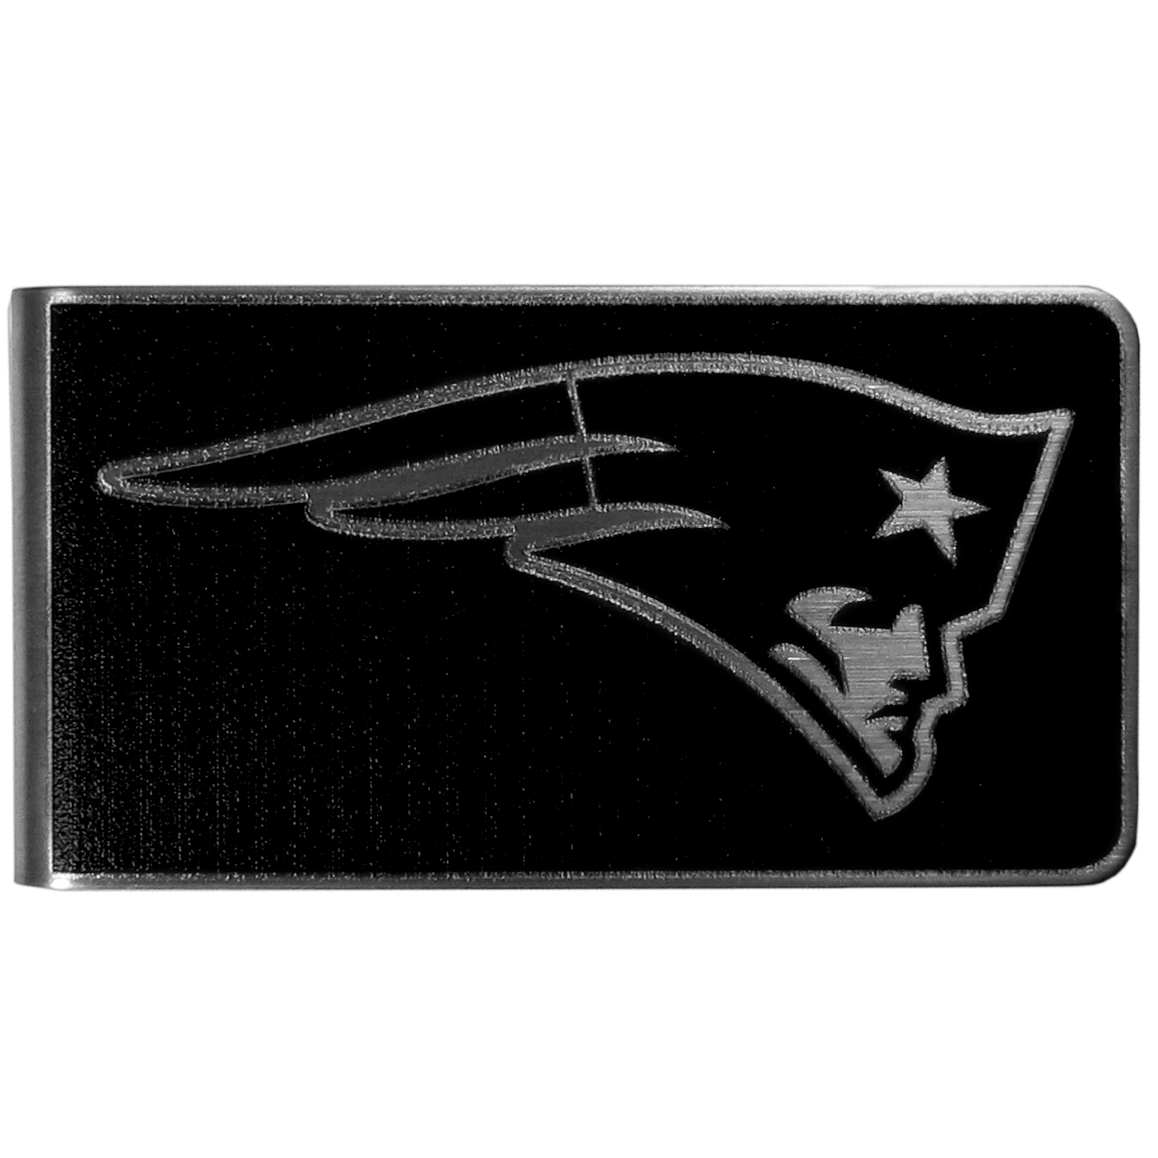 New England Patriots Black and Steel Money Clip - Our monochromatic steel money clips have a classic style and superior quality. The strong, steel clip has a black overlay of the New England Patriots logo over the brushed metal finish creating a stylish men's fashion accessory that would make any fan proud.